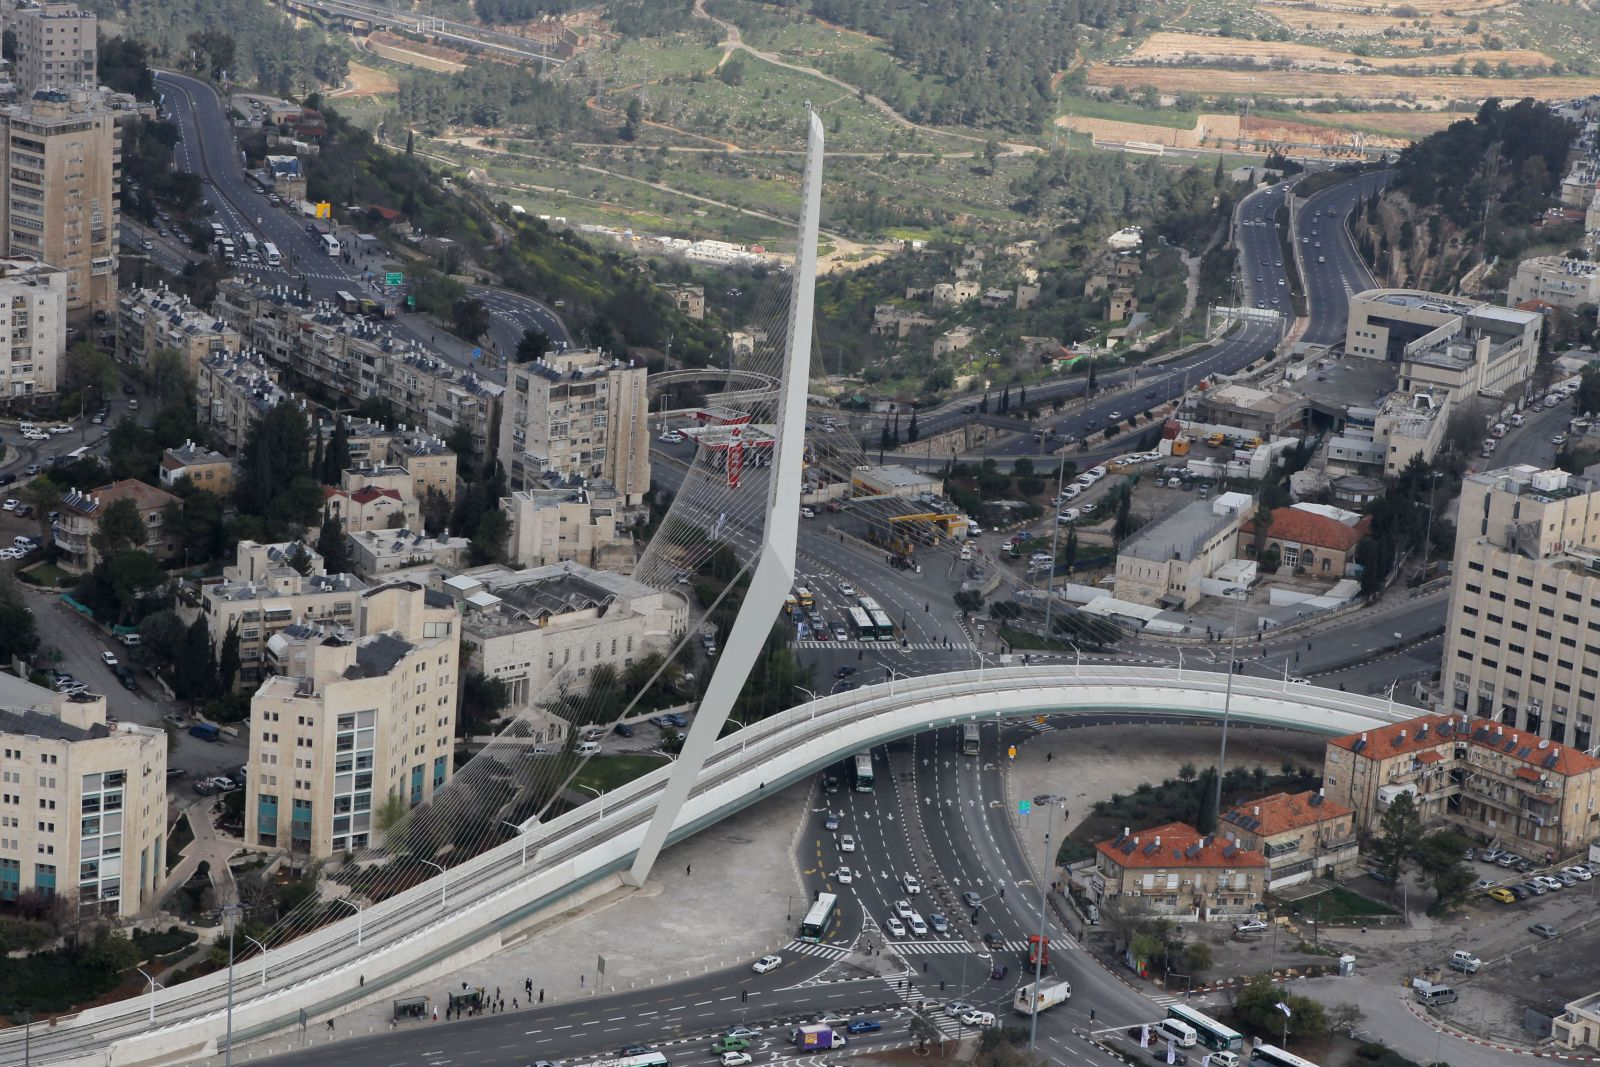 The Chords Bridge dominates the Jerusalem skyline. Photo by Nati Shohat/FLASH90